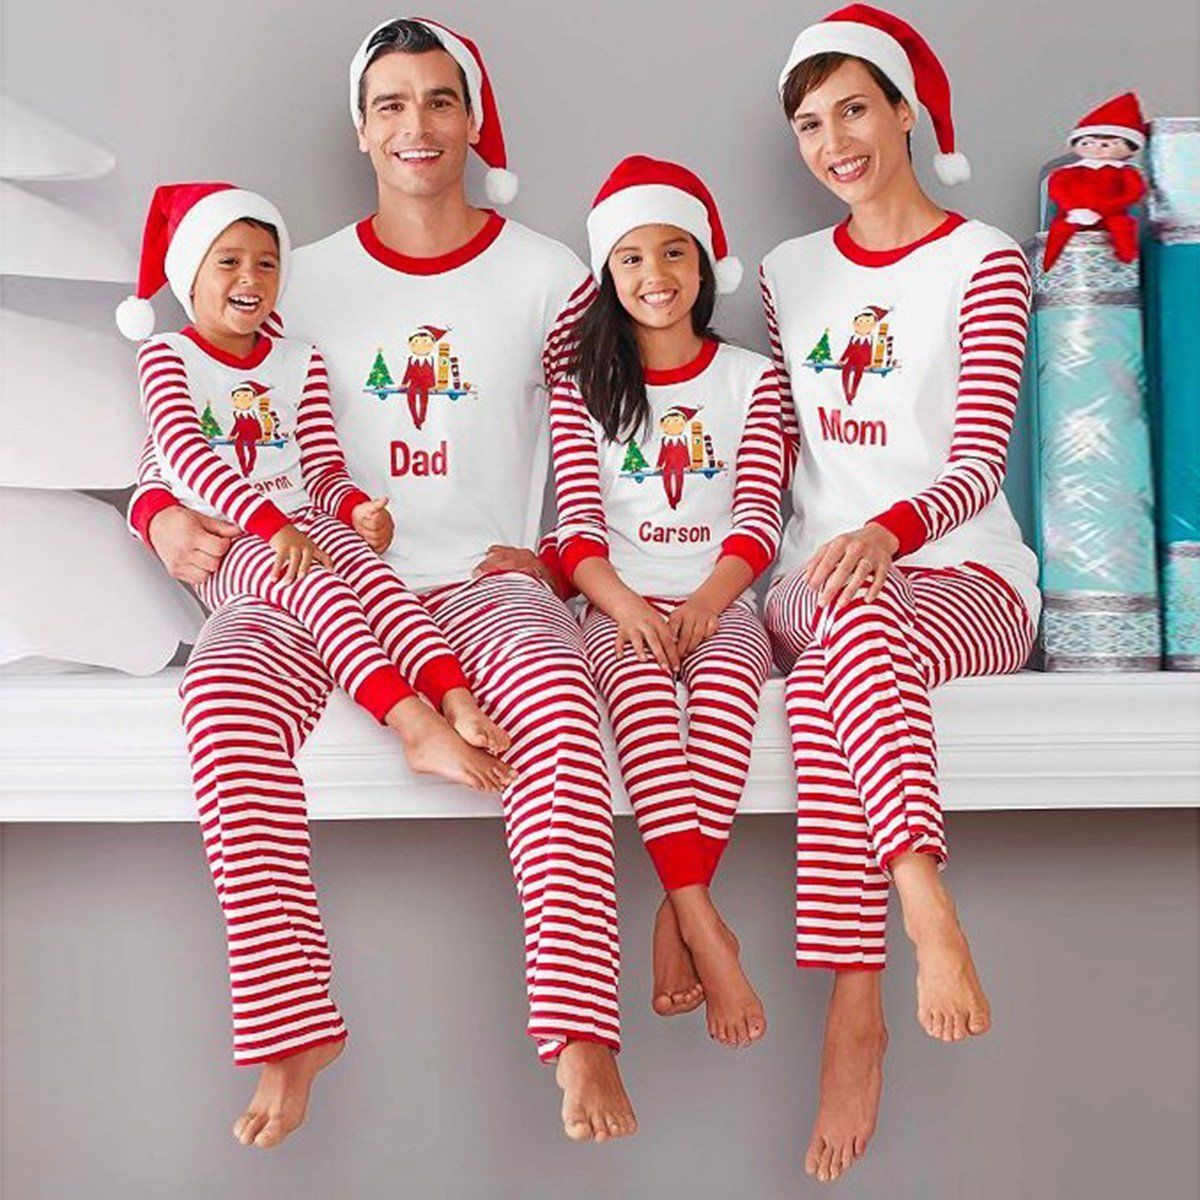 6.99 - Family Matching Christmas Pajamas Set Men s Women Kids Xmas  Sleepwear Nightwear  ebay  Fashion 2f2f3d04e